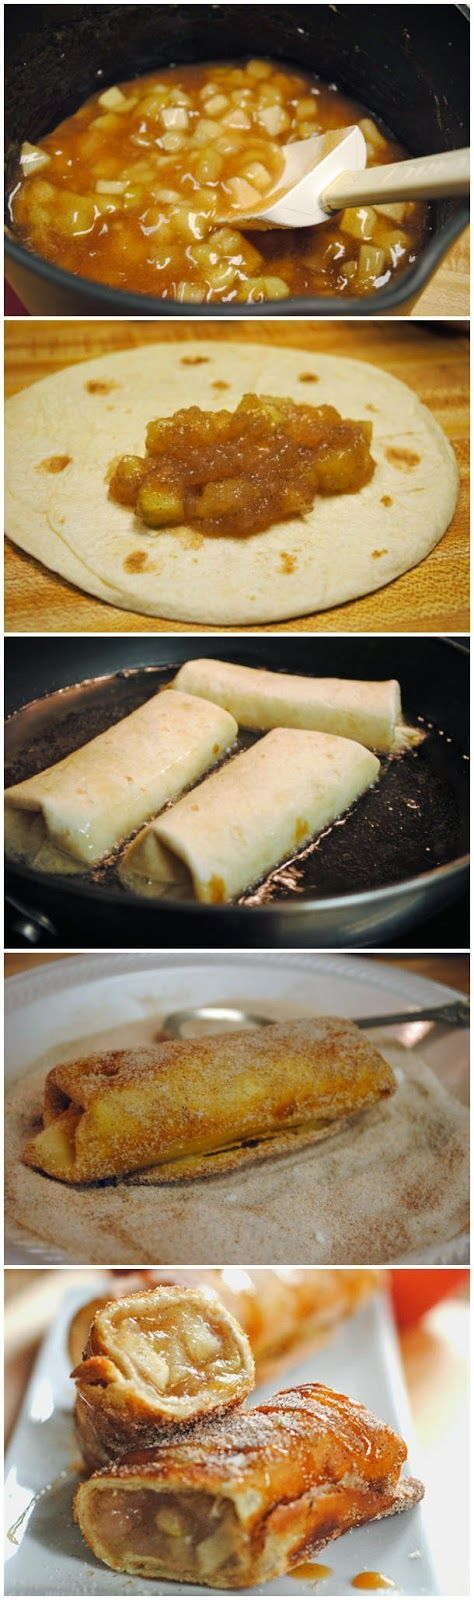 Cinnamon Apple Dessert Chimichangas ~ Muchtaste